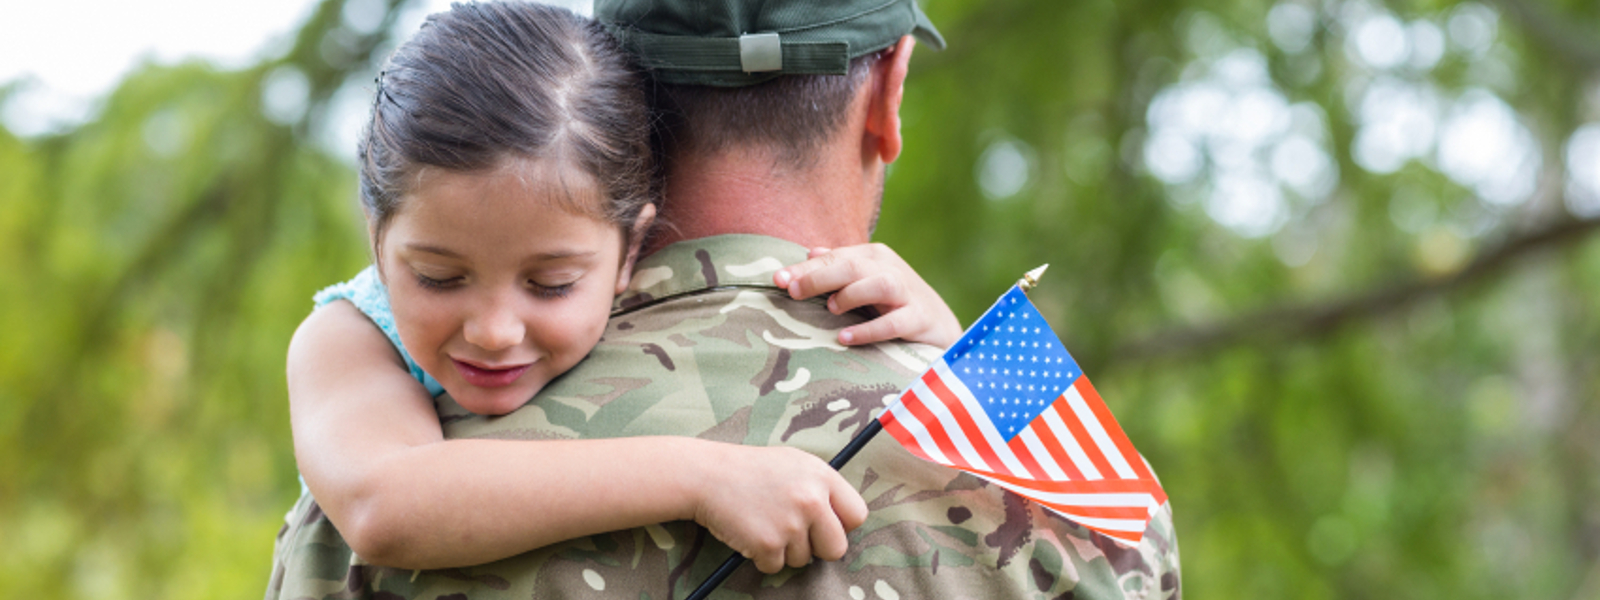 Military, Diplomatic, and Veteran Programs and Services - Patient Care